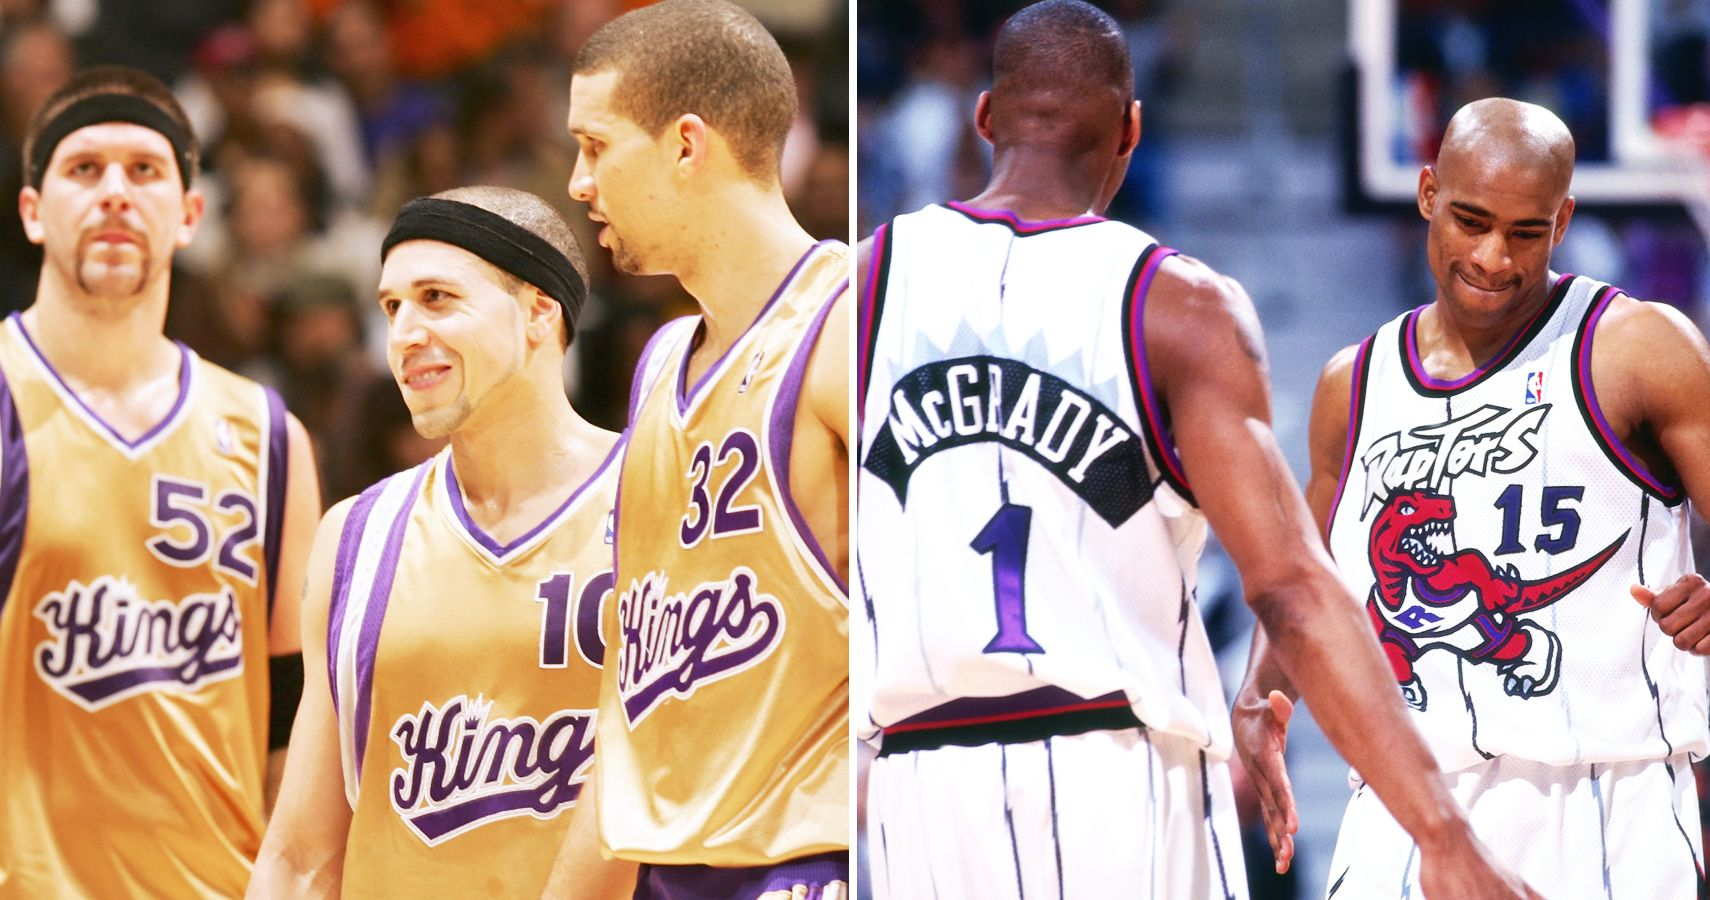 c2e908e2f54 10 NBA Uniforms We Never Want To See Again And 10 That Should Be Brought  Back